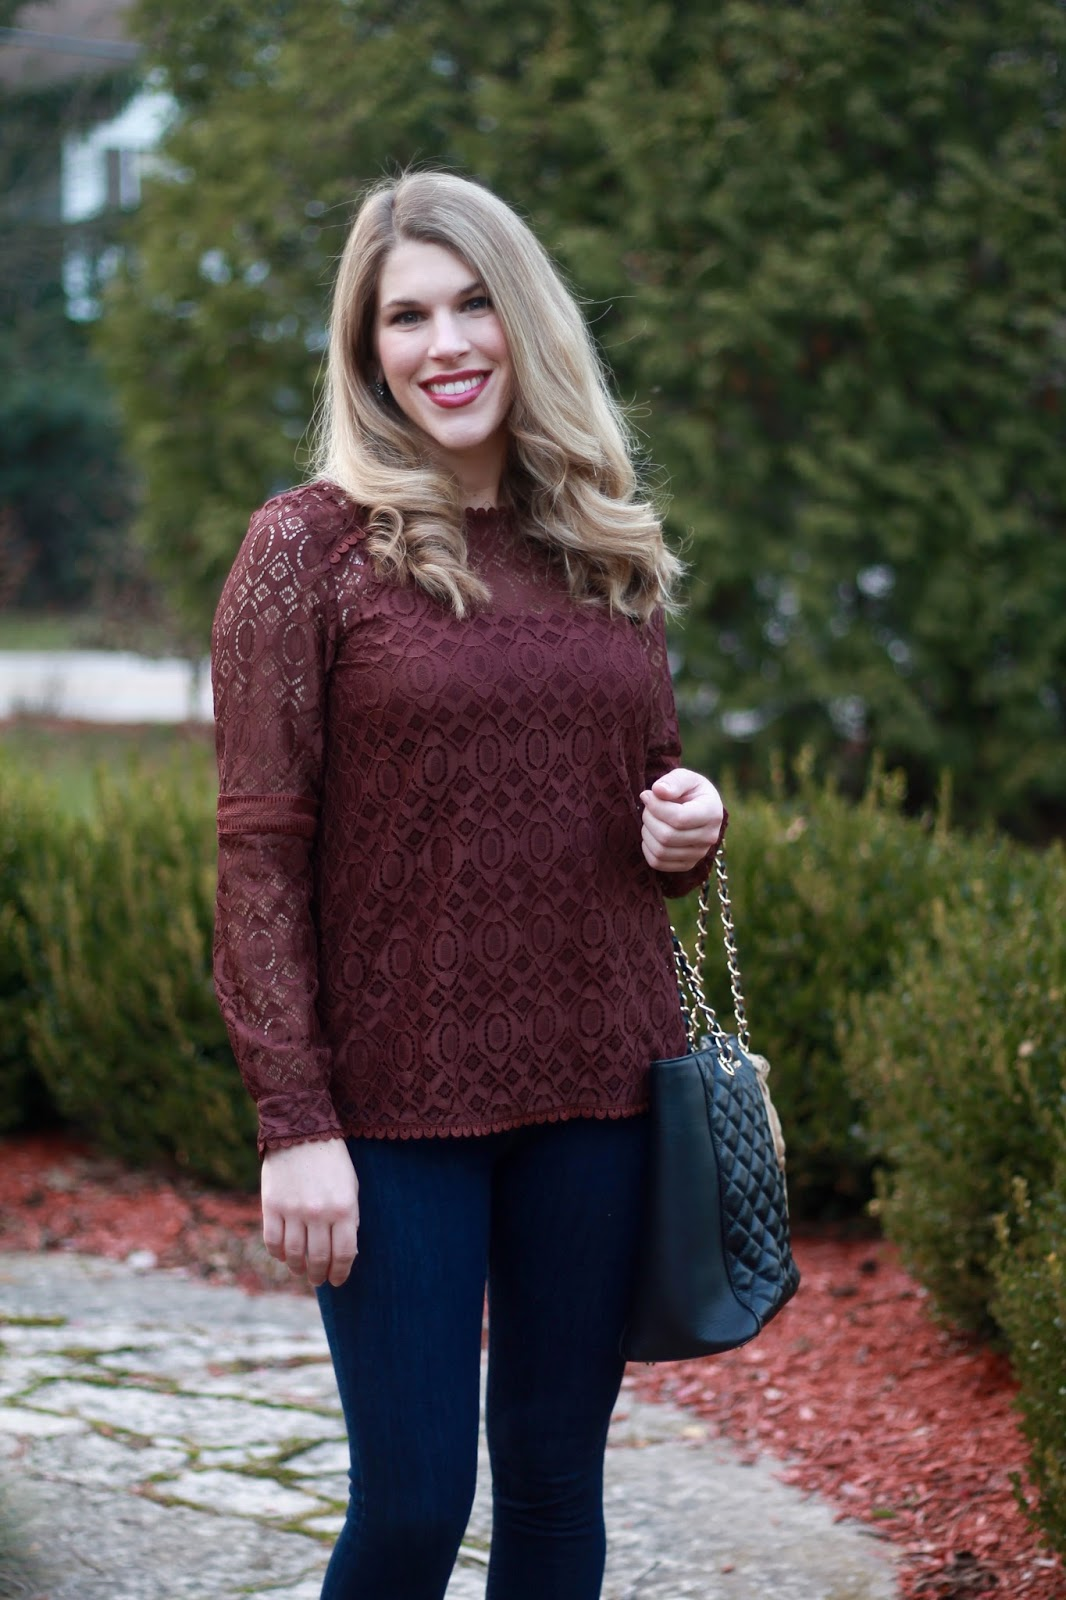 PinkBlush burgundy lace top, dark skinny jeans, black heels, black quilted tote, casual holiday outfit